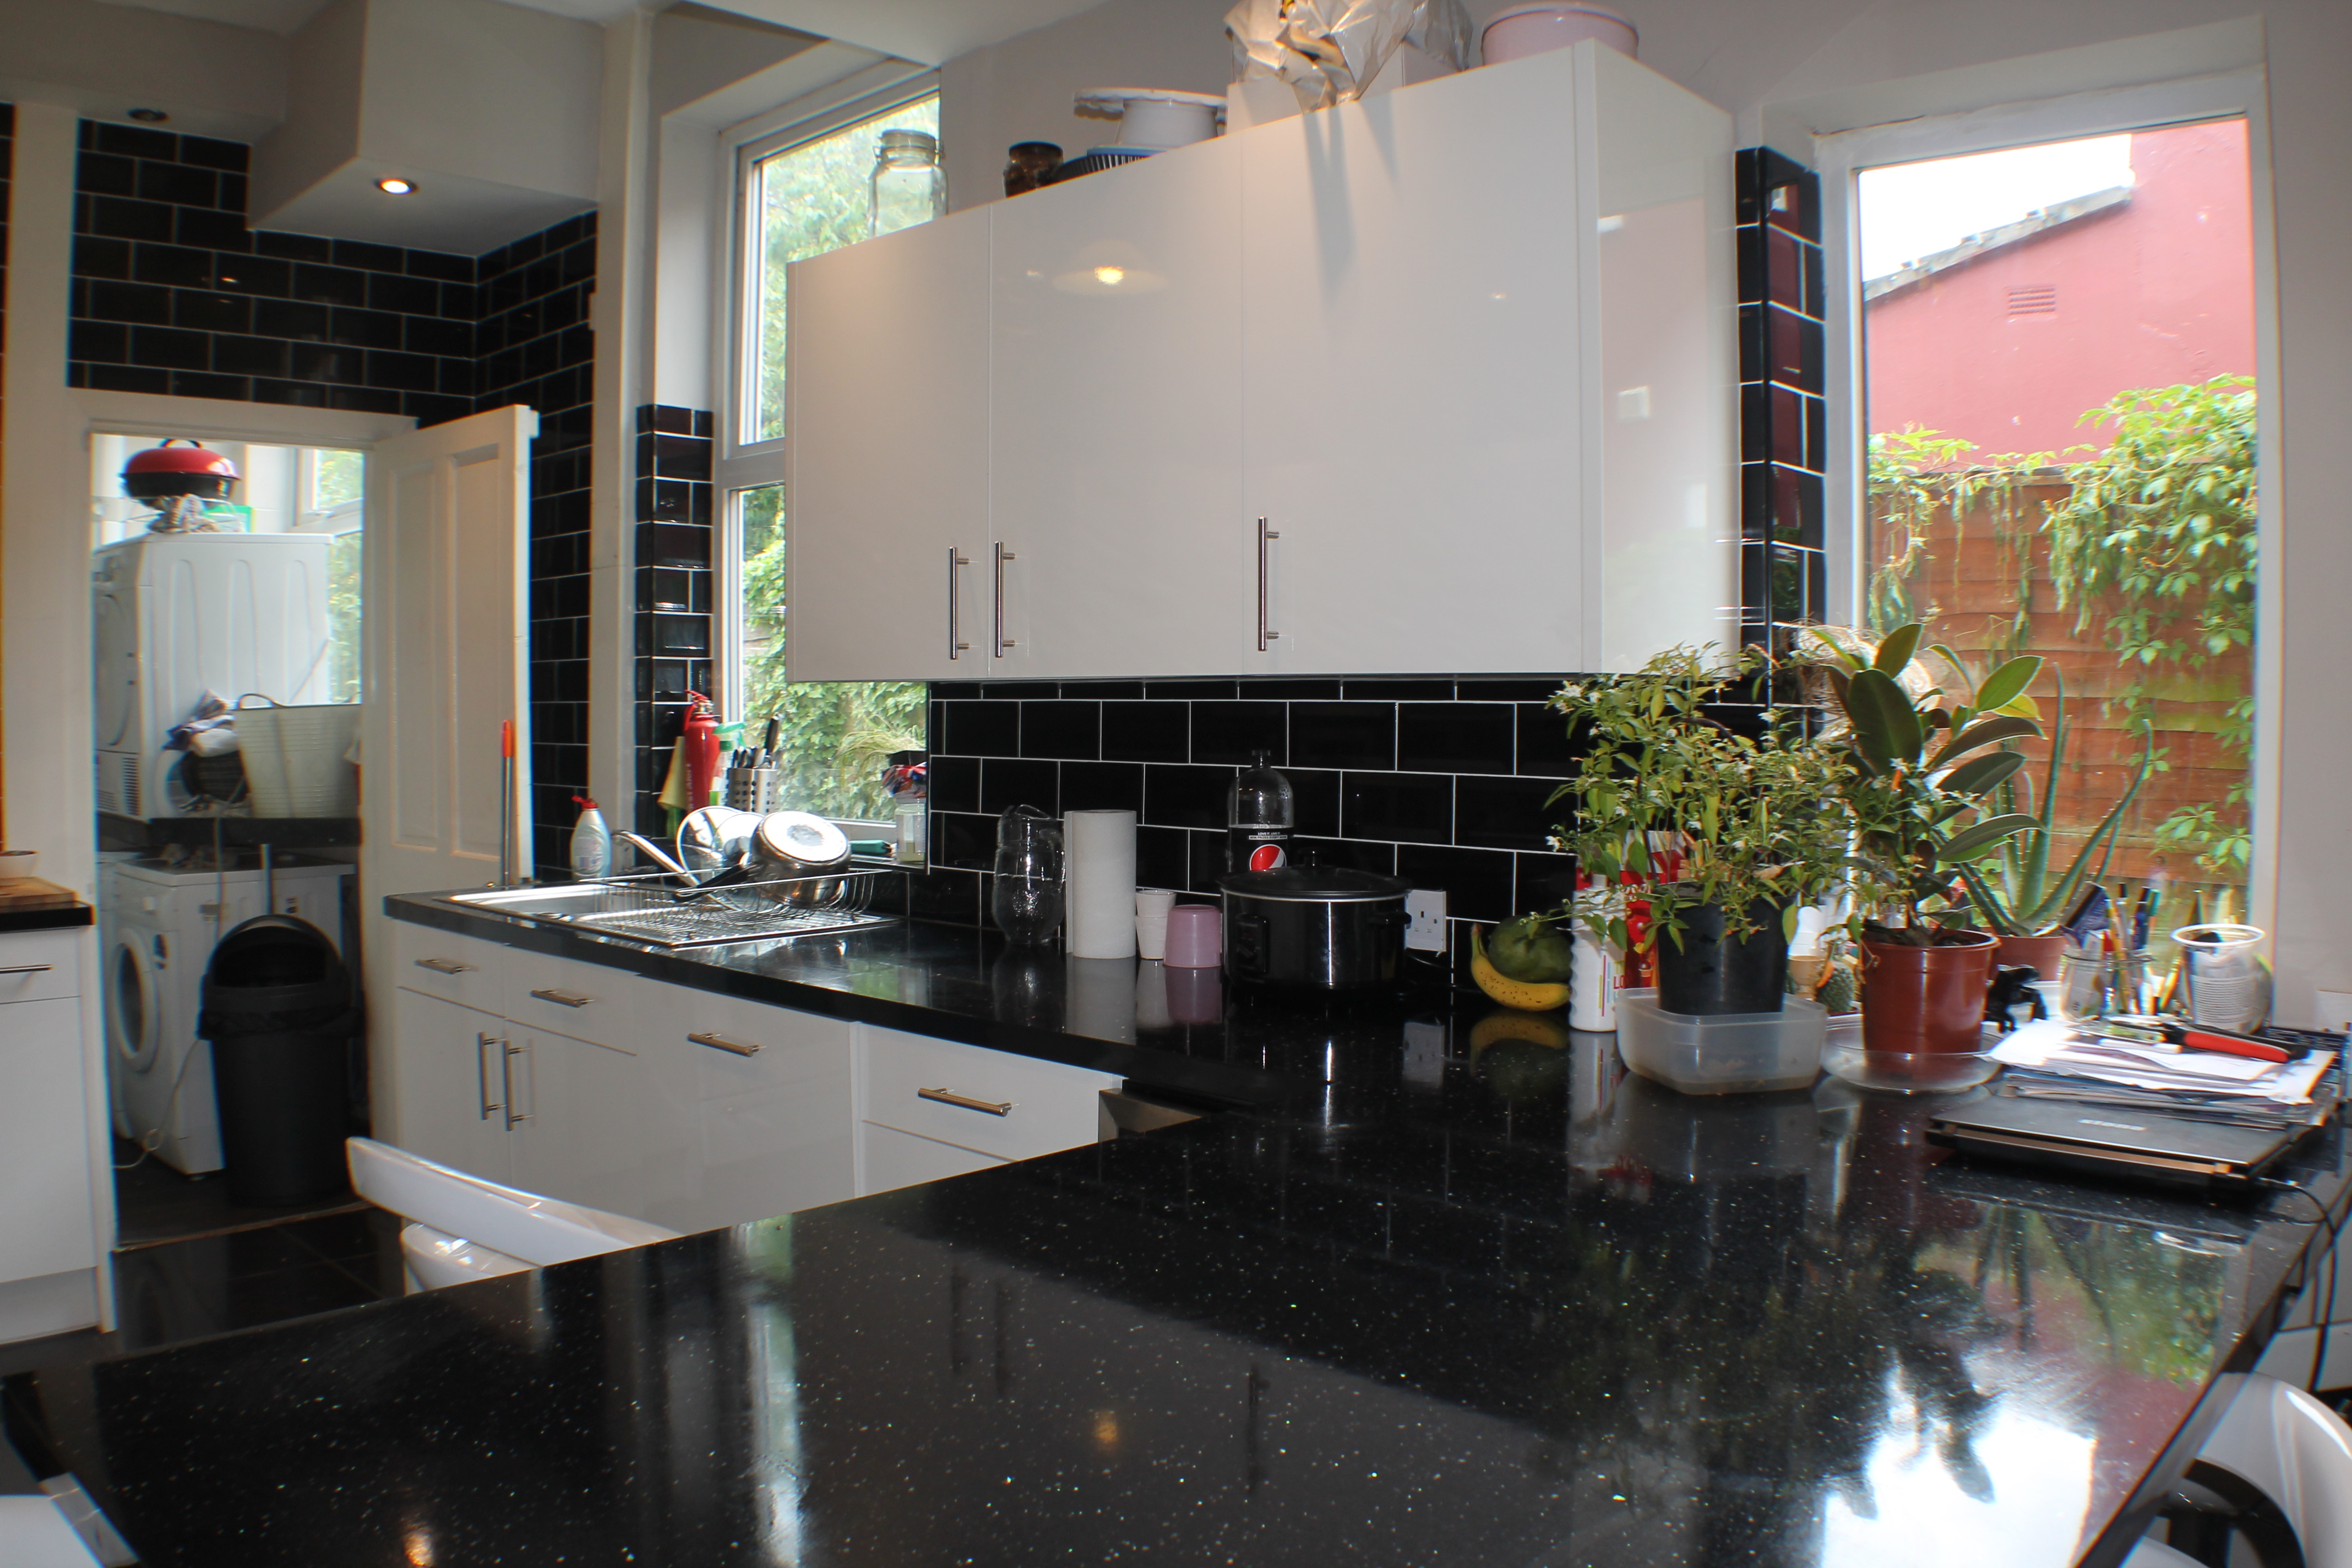 Kitchen work top in 10 Marlborough avenue. Young Professionals house share.